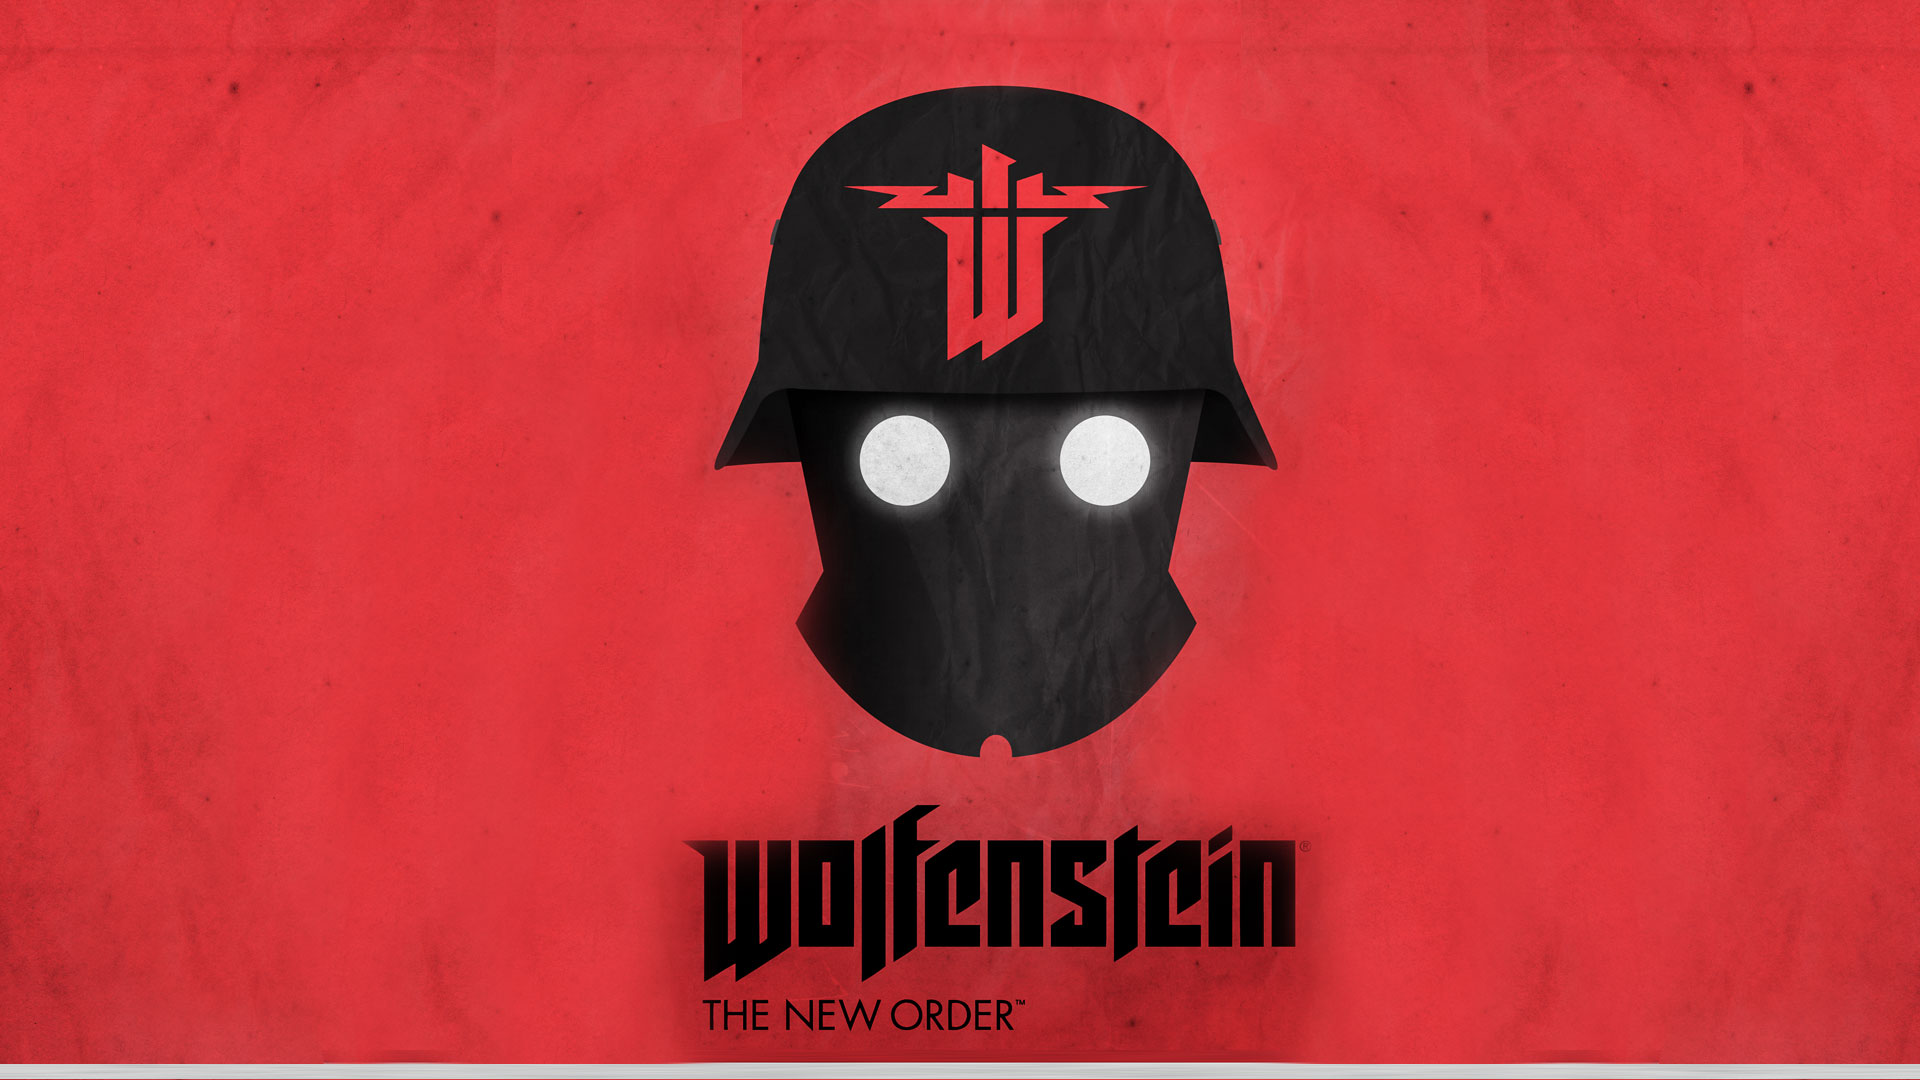 Wolfenstein: The New Order is set to hit shelves in May for Playstatoin 3, Playstation 4, Xbox One, Xbox 360 and PC